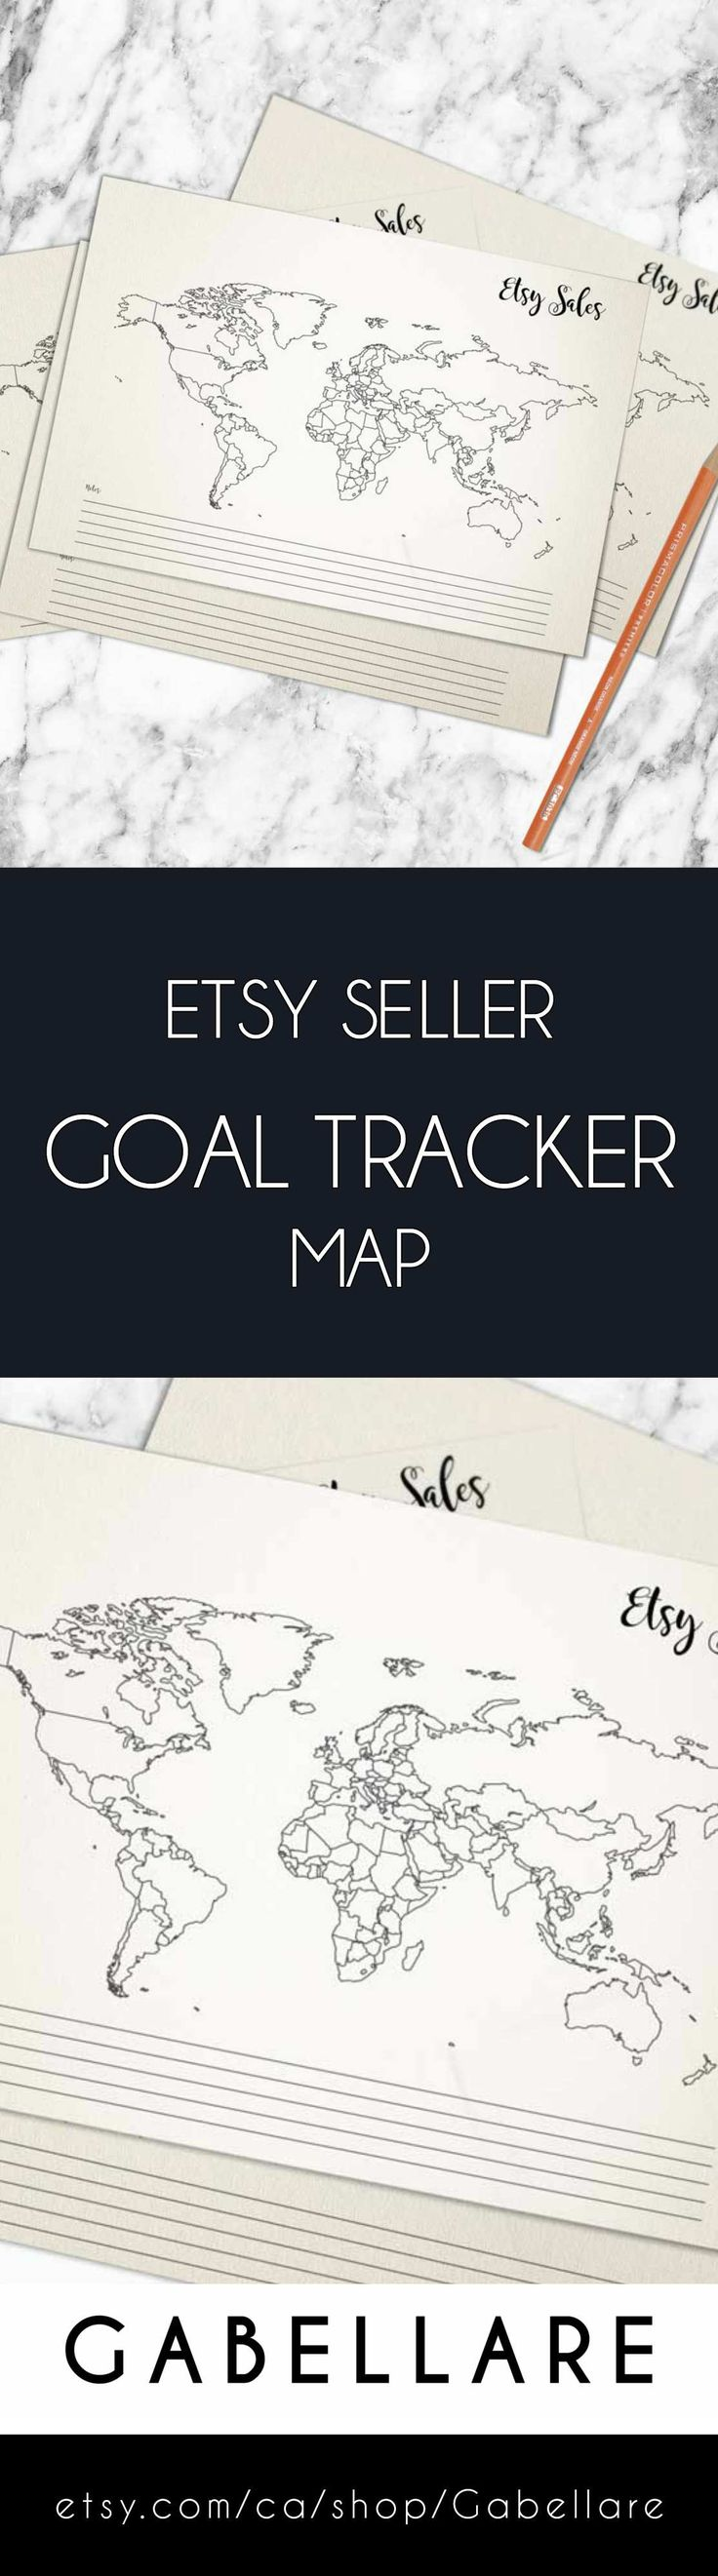 Gabellare   Are you ready to increase revenue?.  To track your sales is a vital ingredient for the success of your Etsy store, and our world map helps you collect your data in an easy way. To track goals is the only way to truly capture whether your marketing process is delivering the results you want.